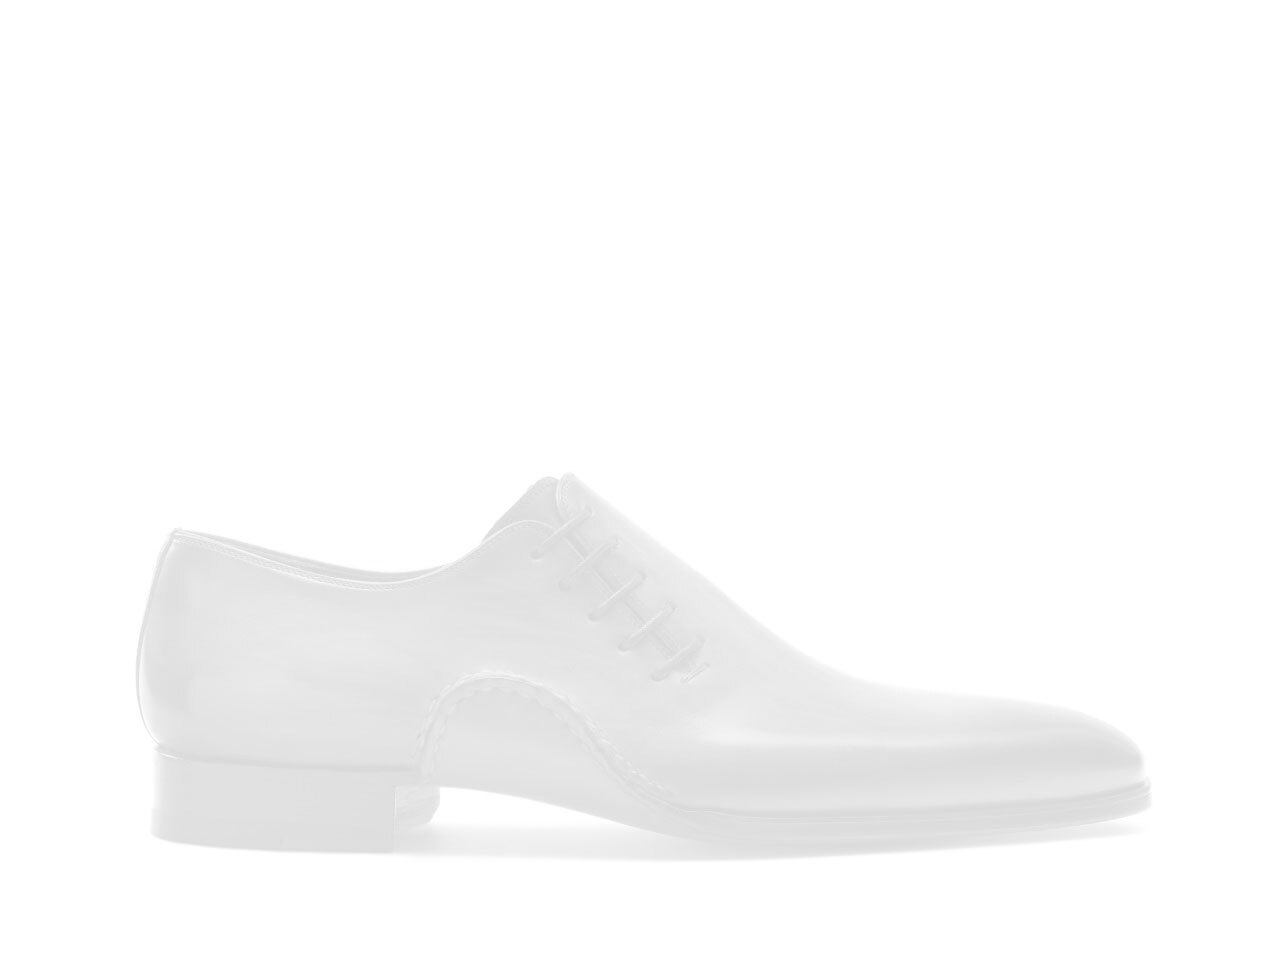 Side view of the Magnanni Ecija II Black and White Men's Sneakers